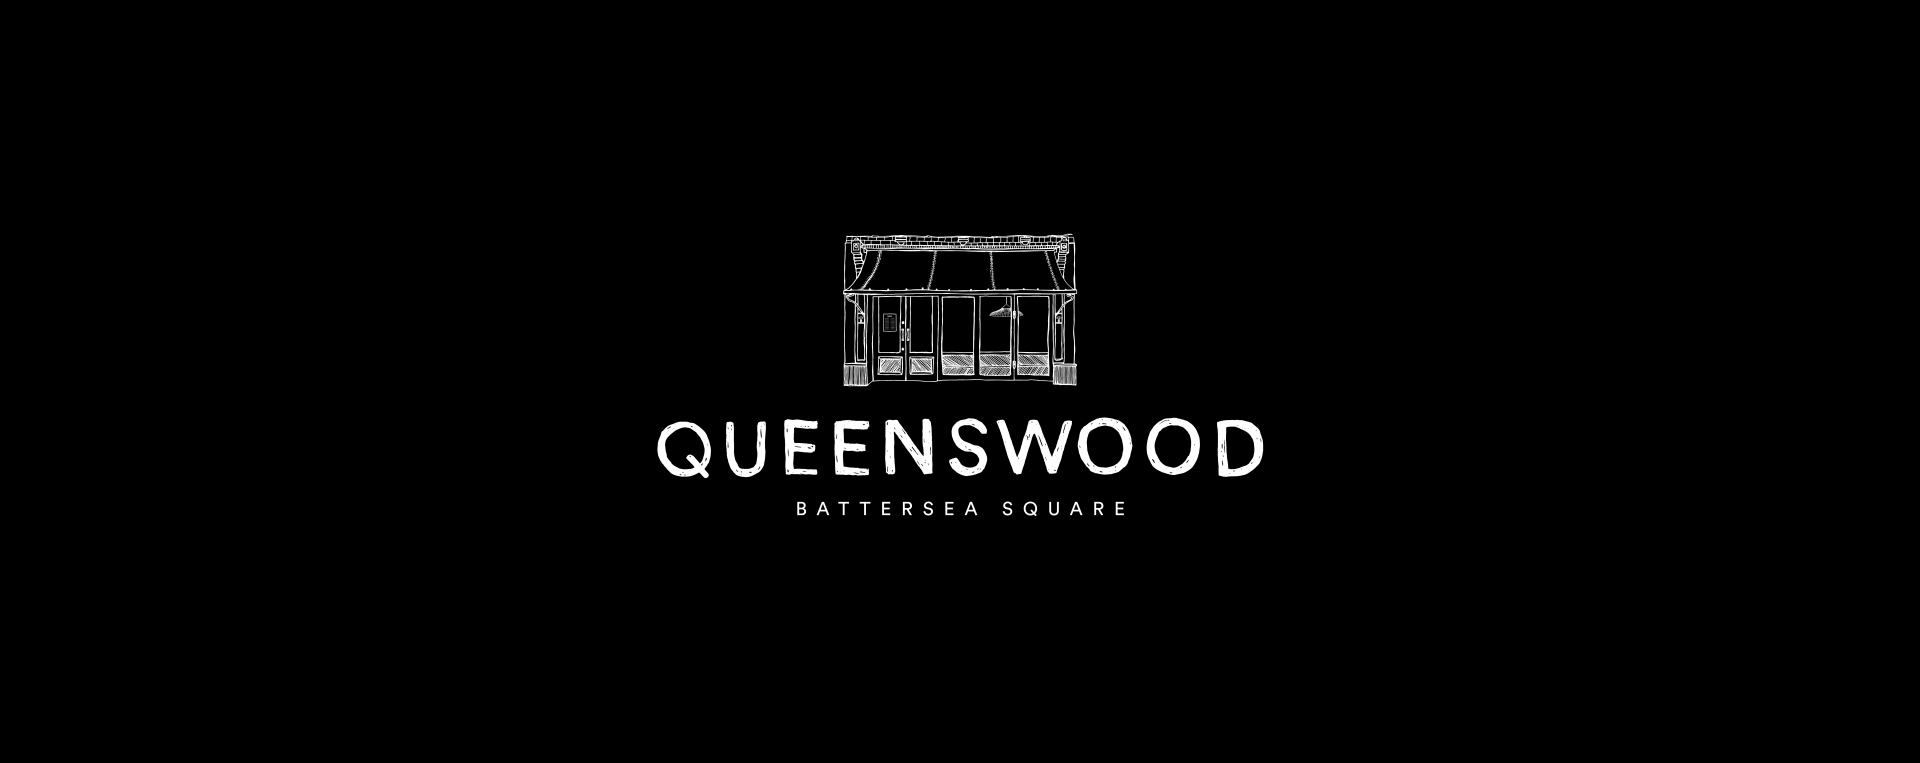 queenswood